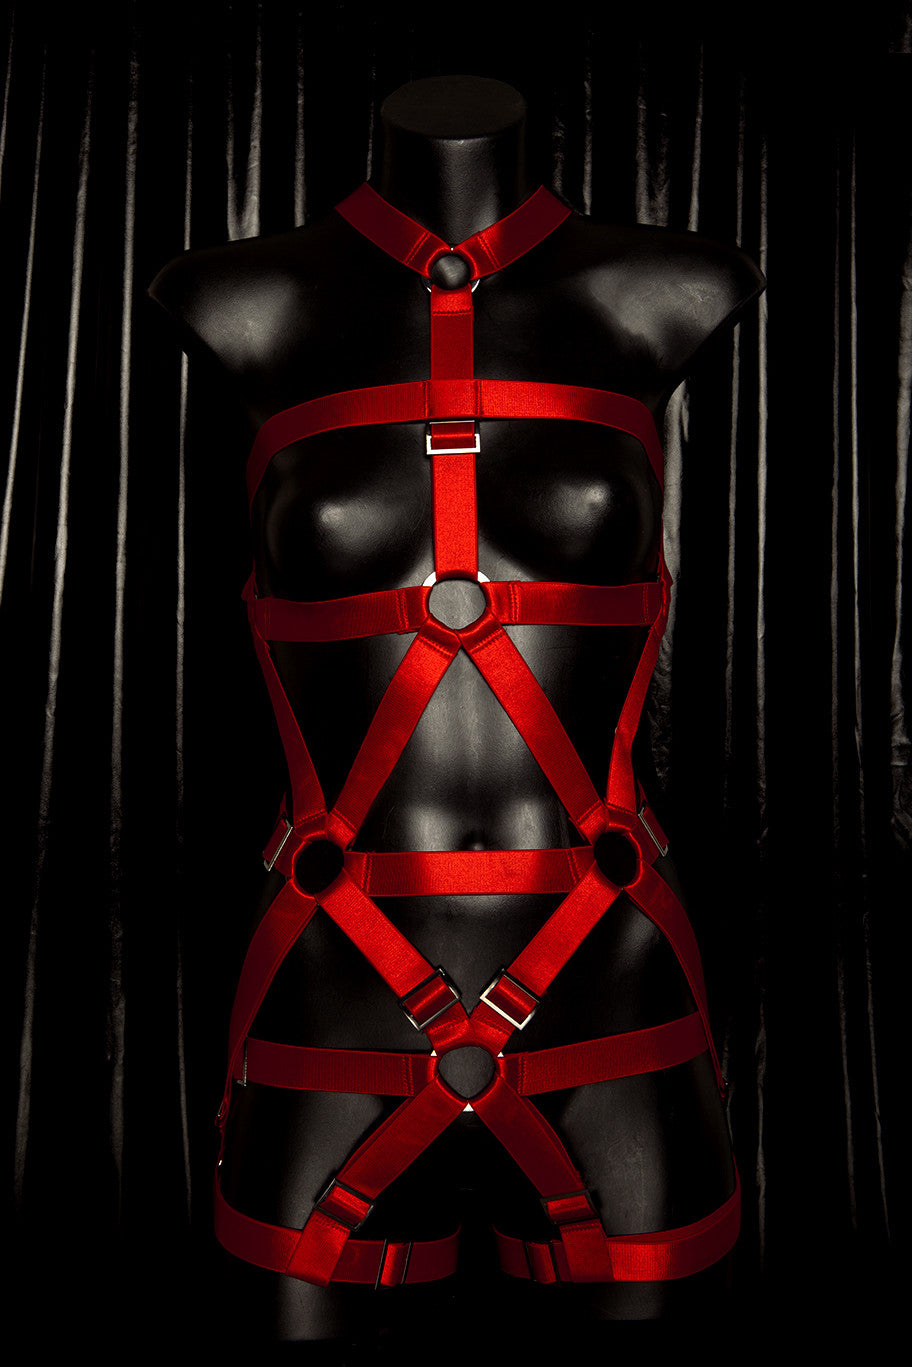 "*BLOODBATH* RED ""Blackmass"" Fullbody Harness"